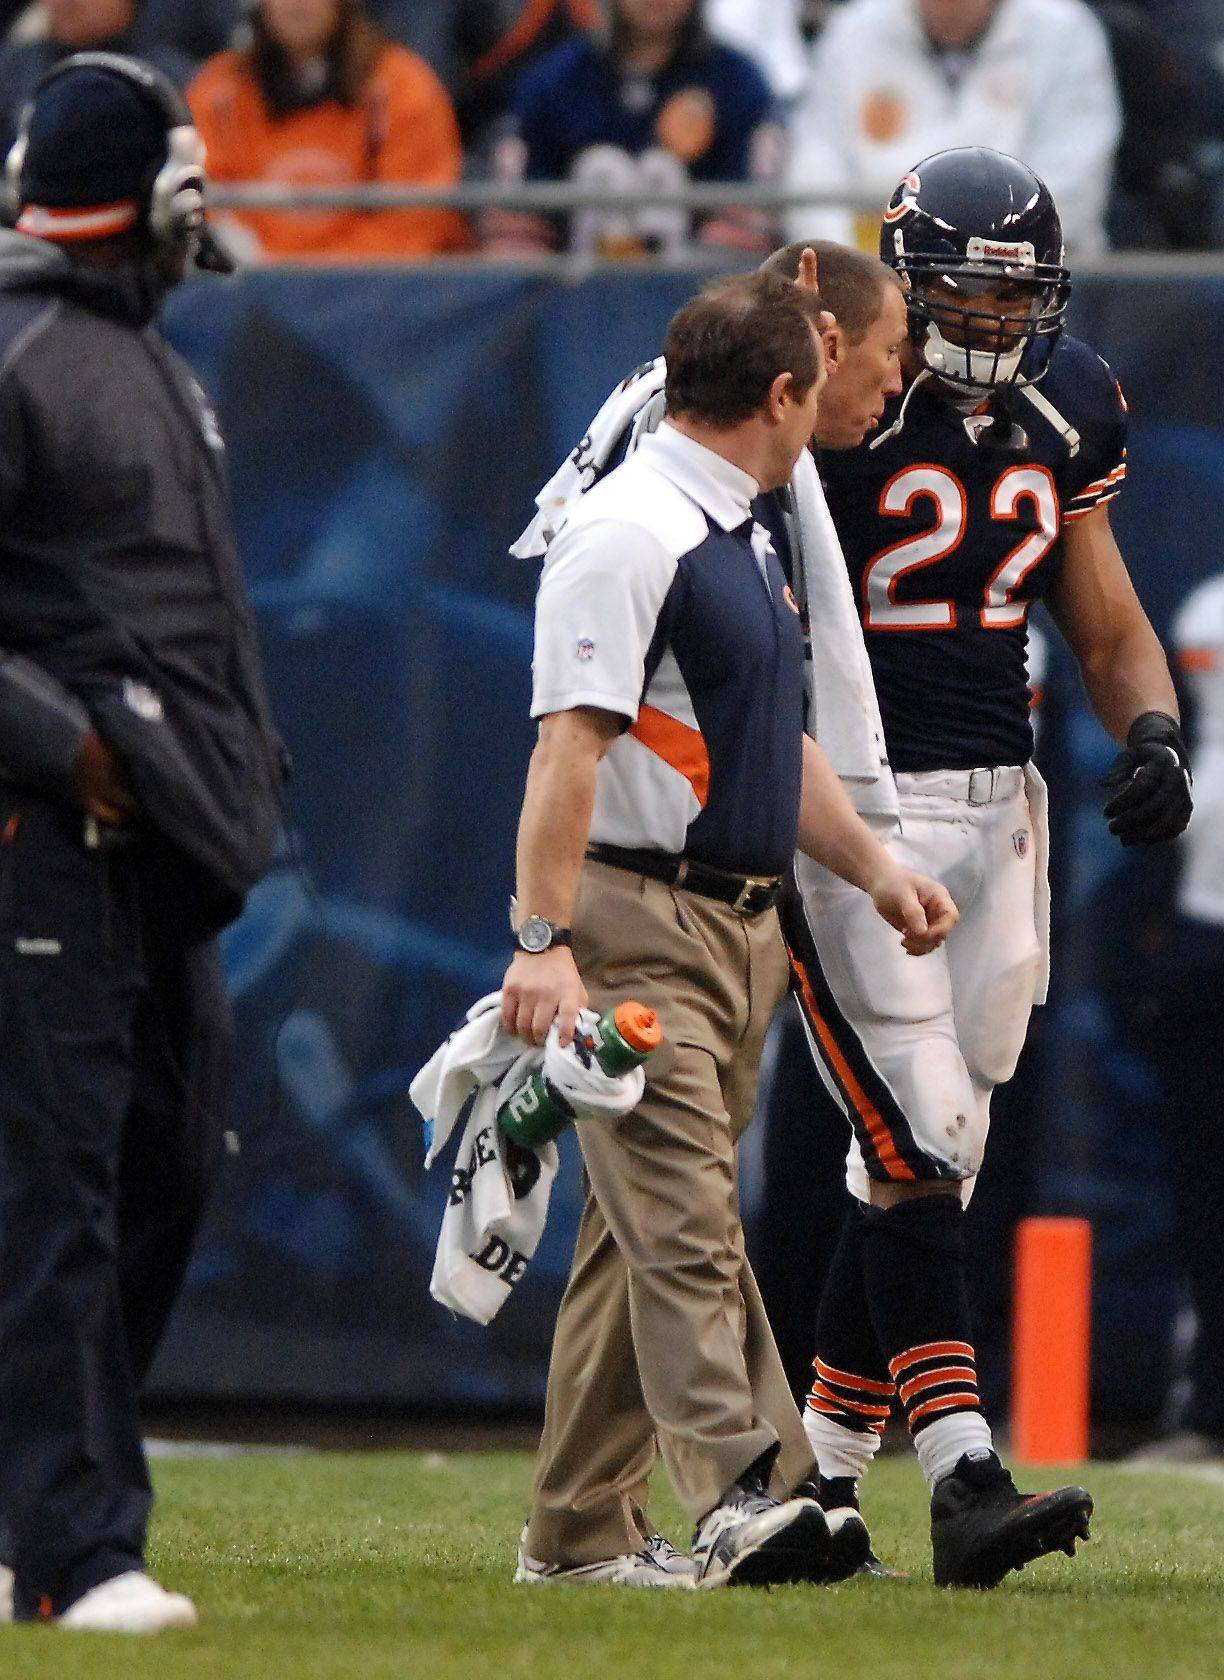 Forte's injury costly in more ways than one